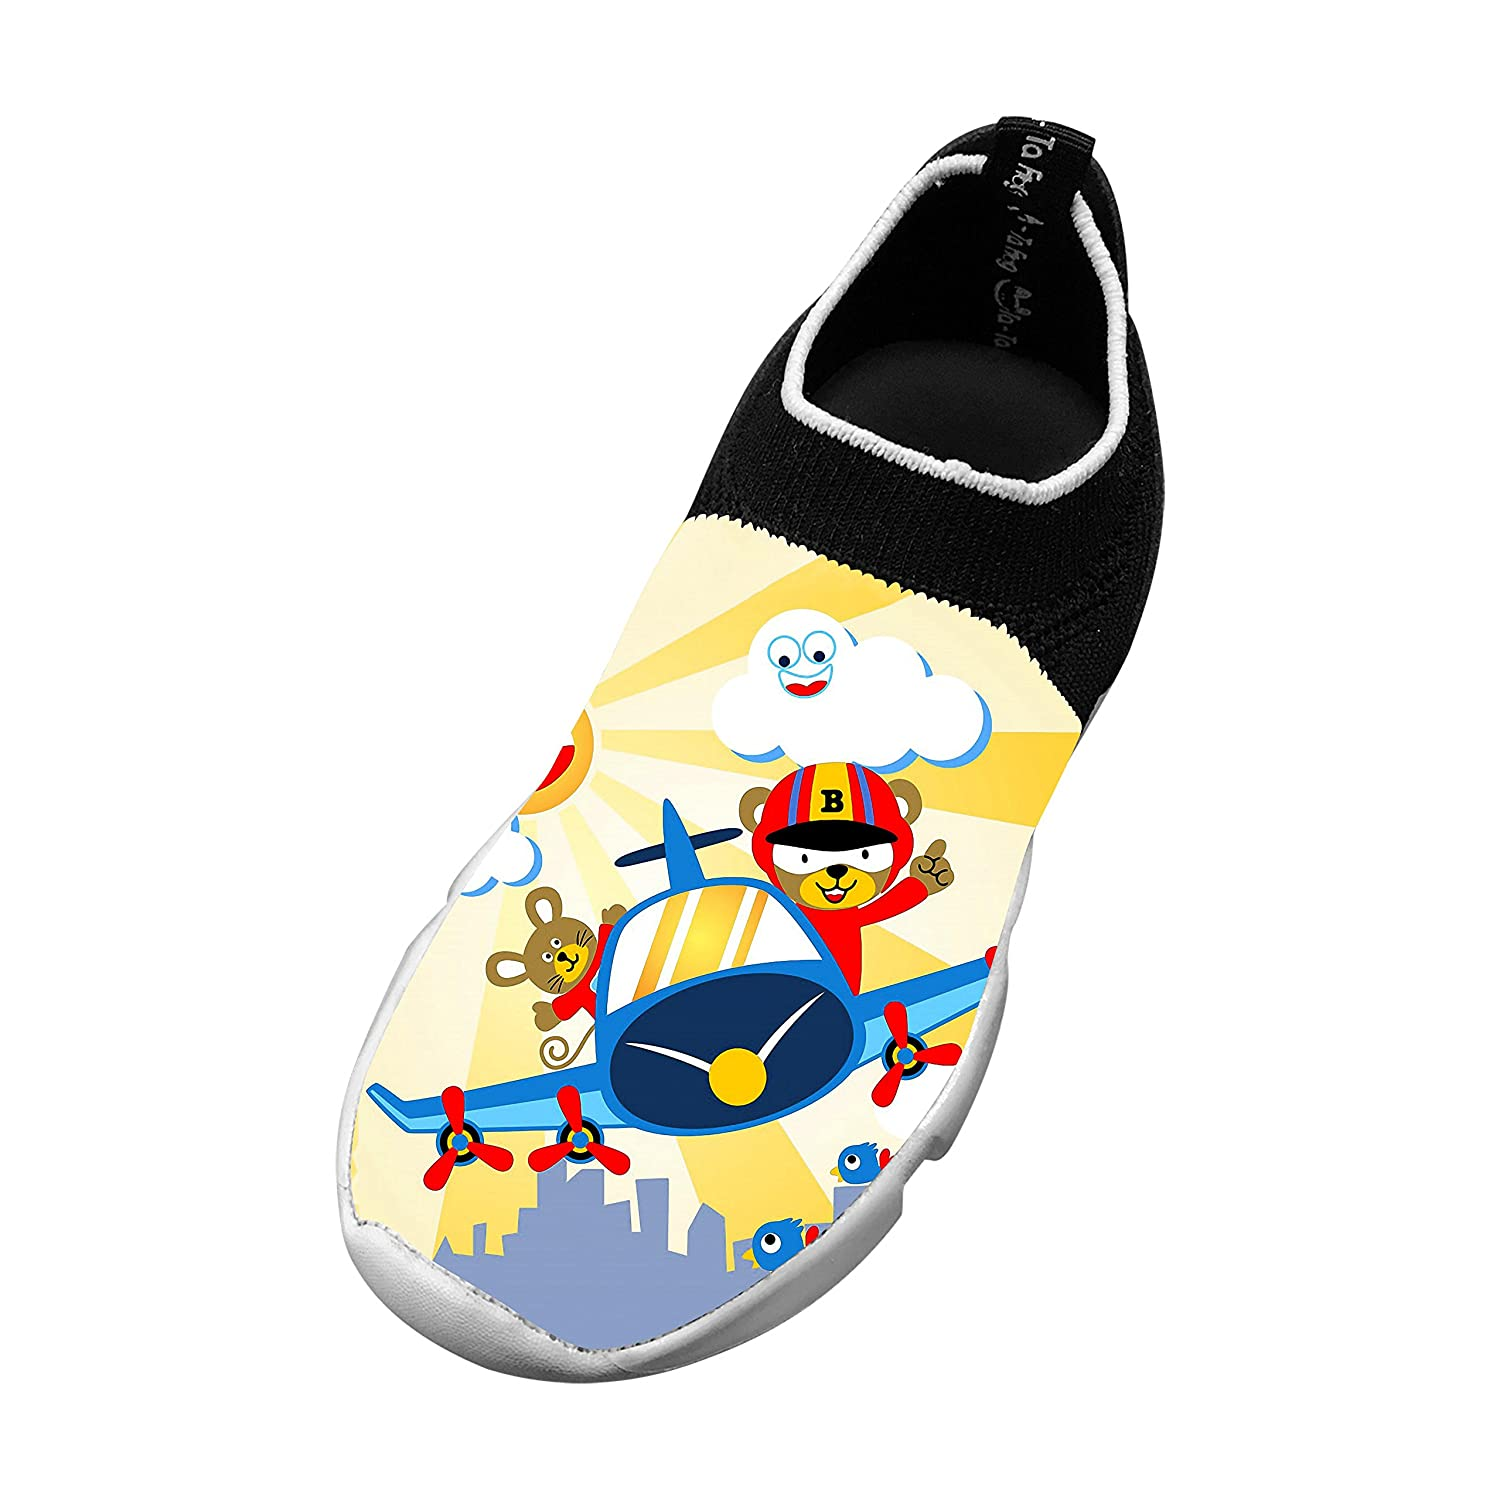 New Funny Flywire Weaving Gym shoes 3D Personalised Custom With Animals Plane For Boys Girls